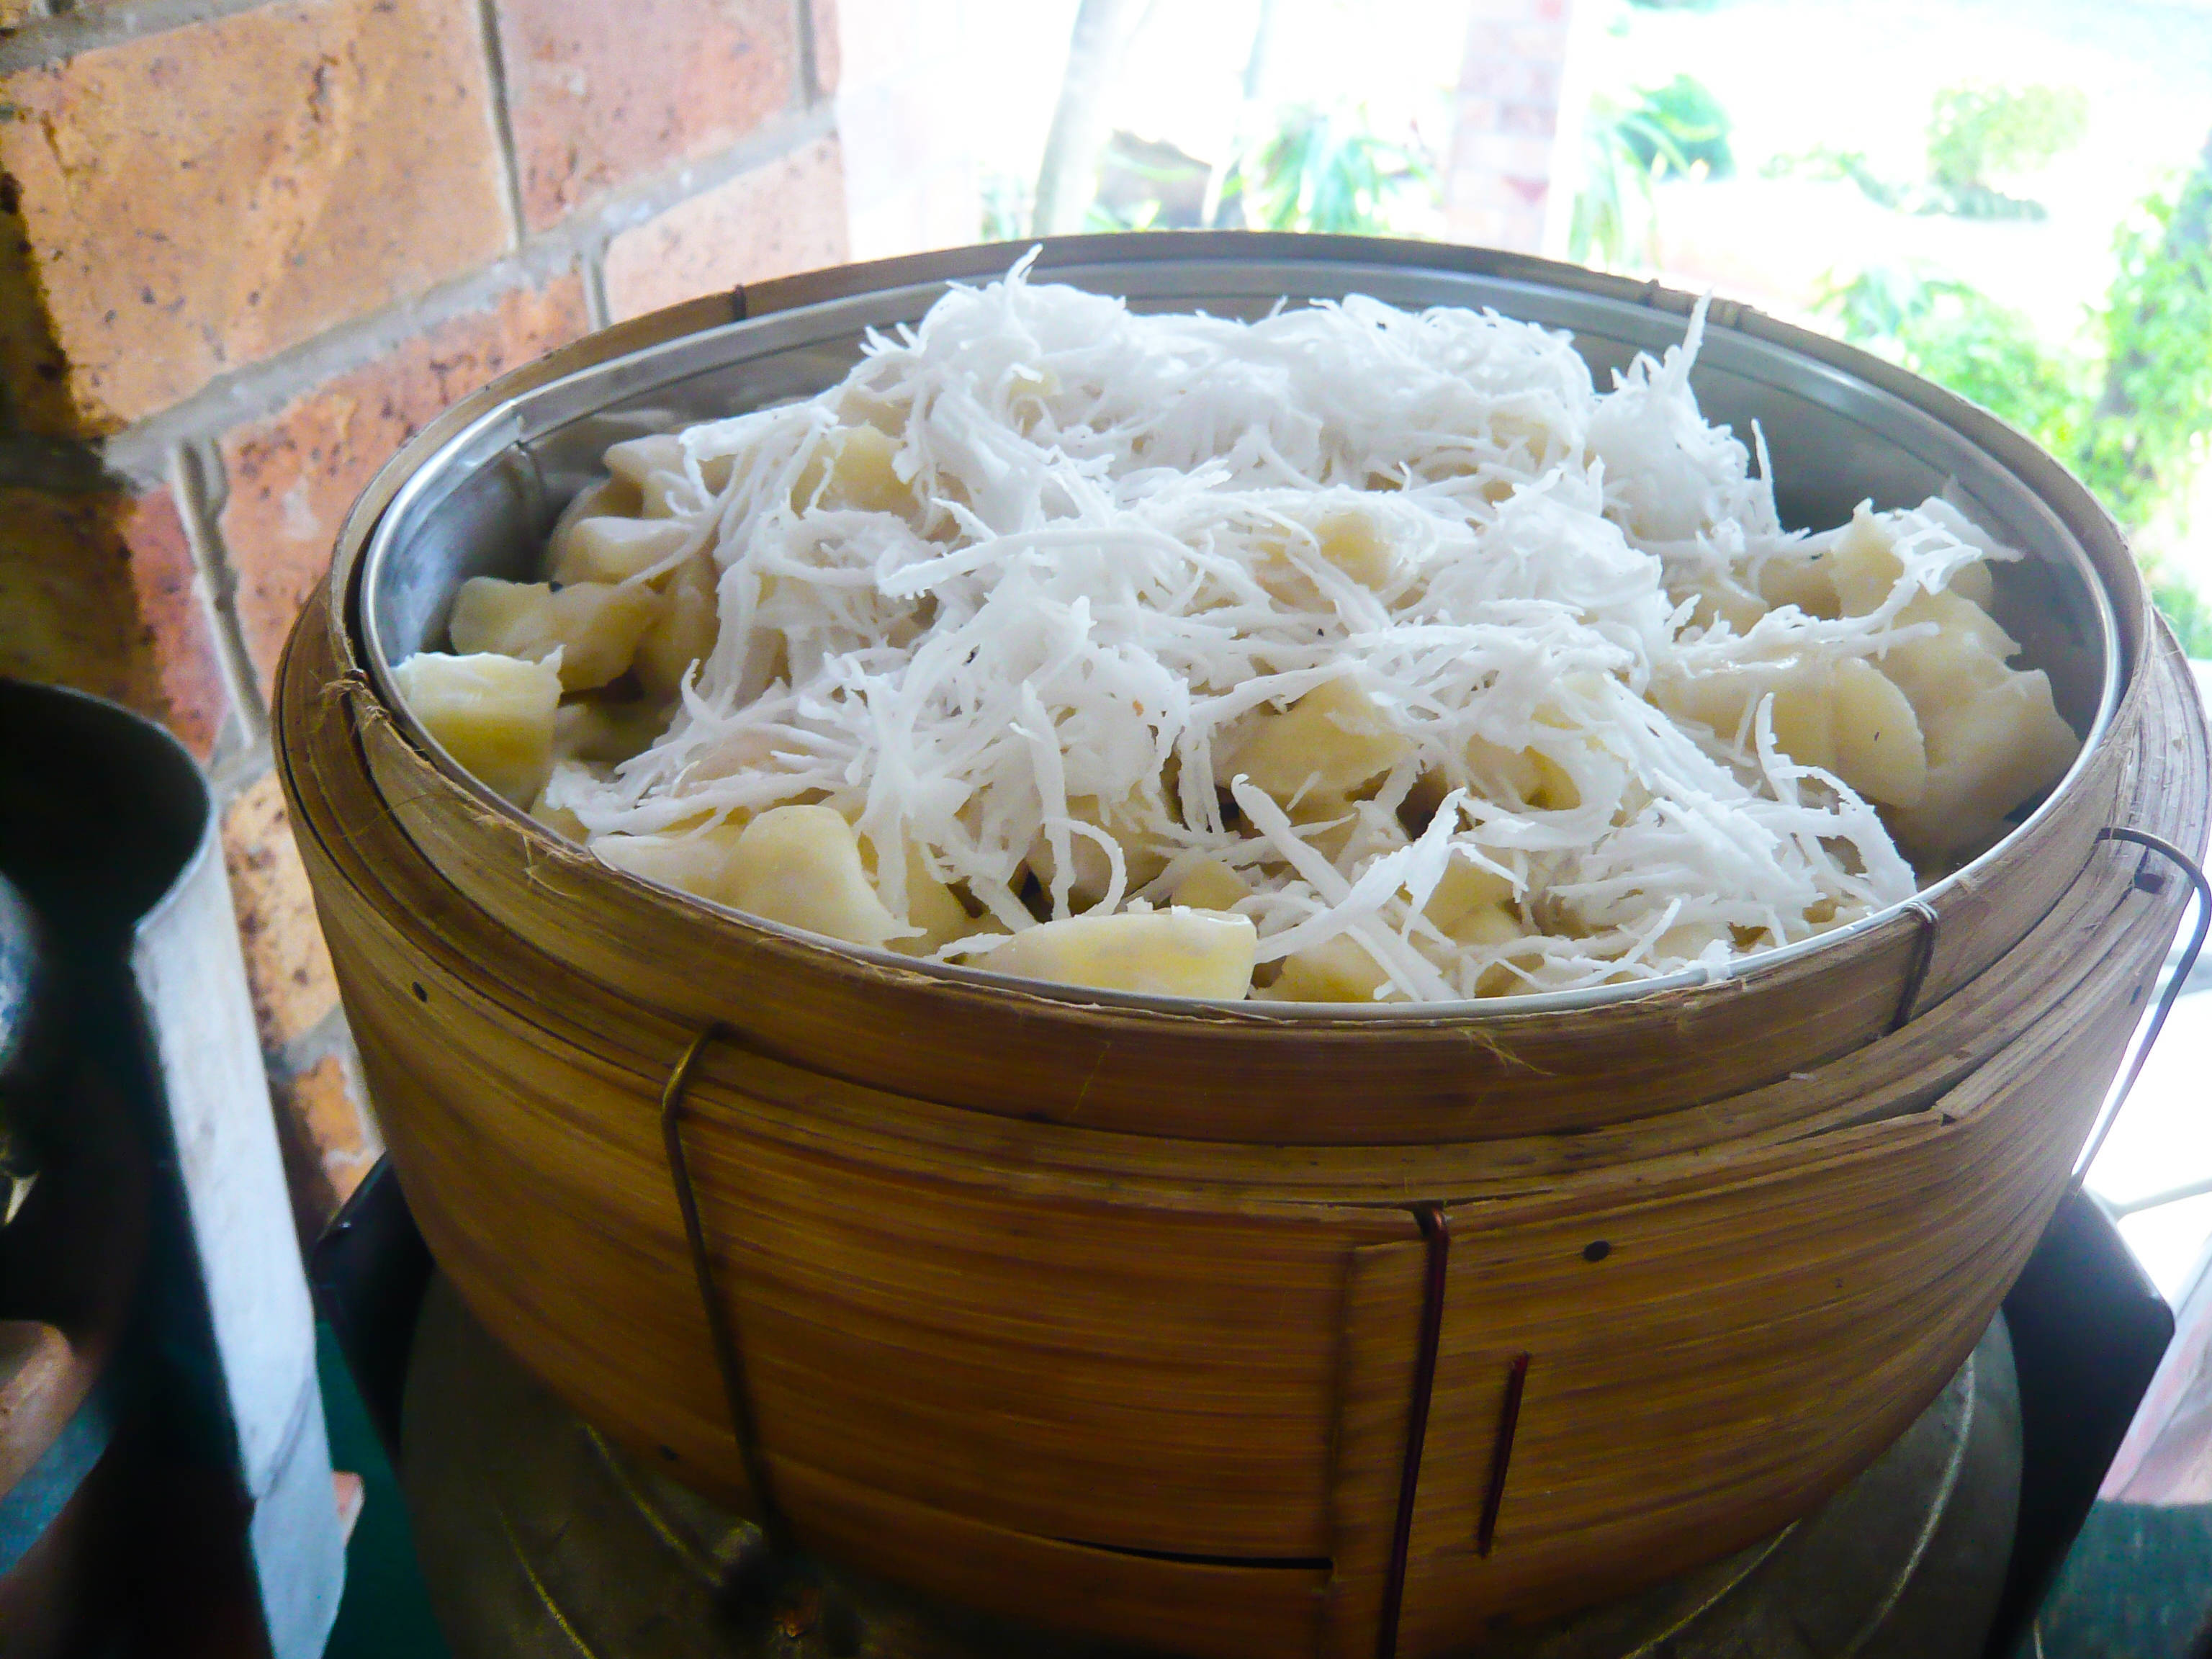 Khoai mì hấp dừa ( Steamed cassava with coconut)